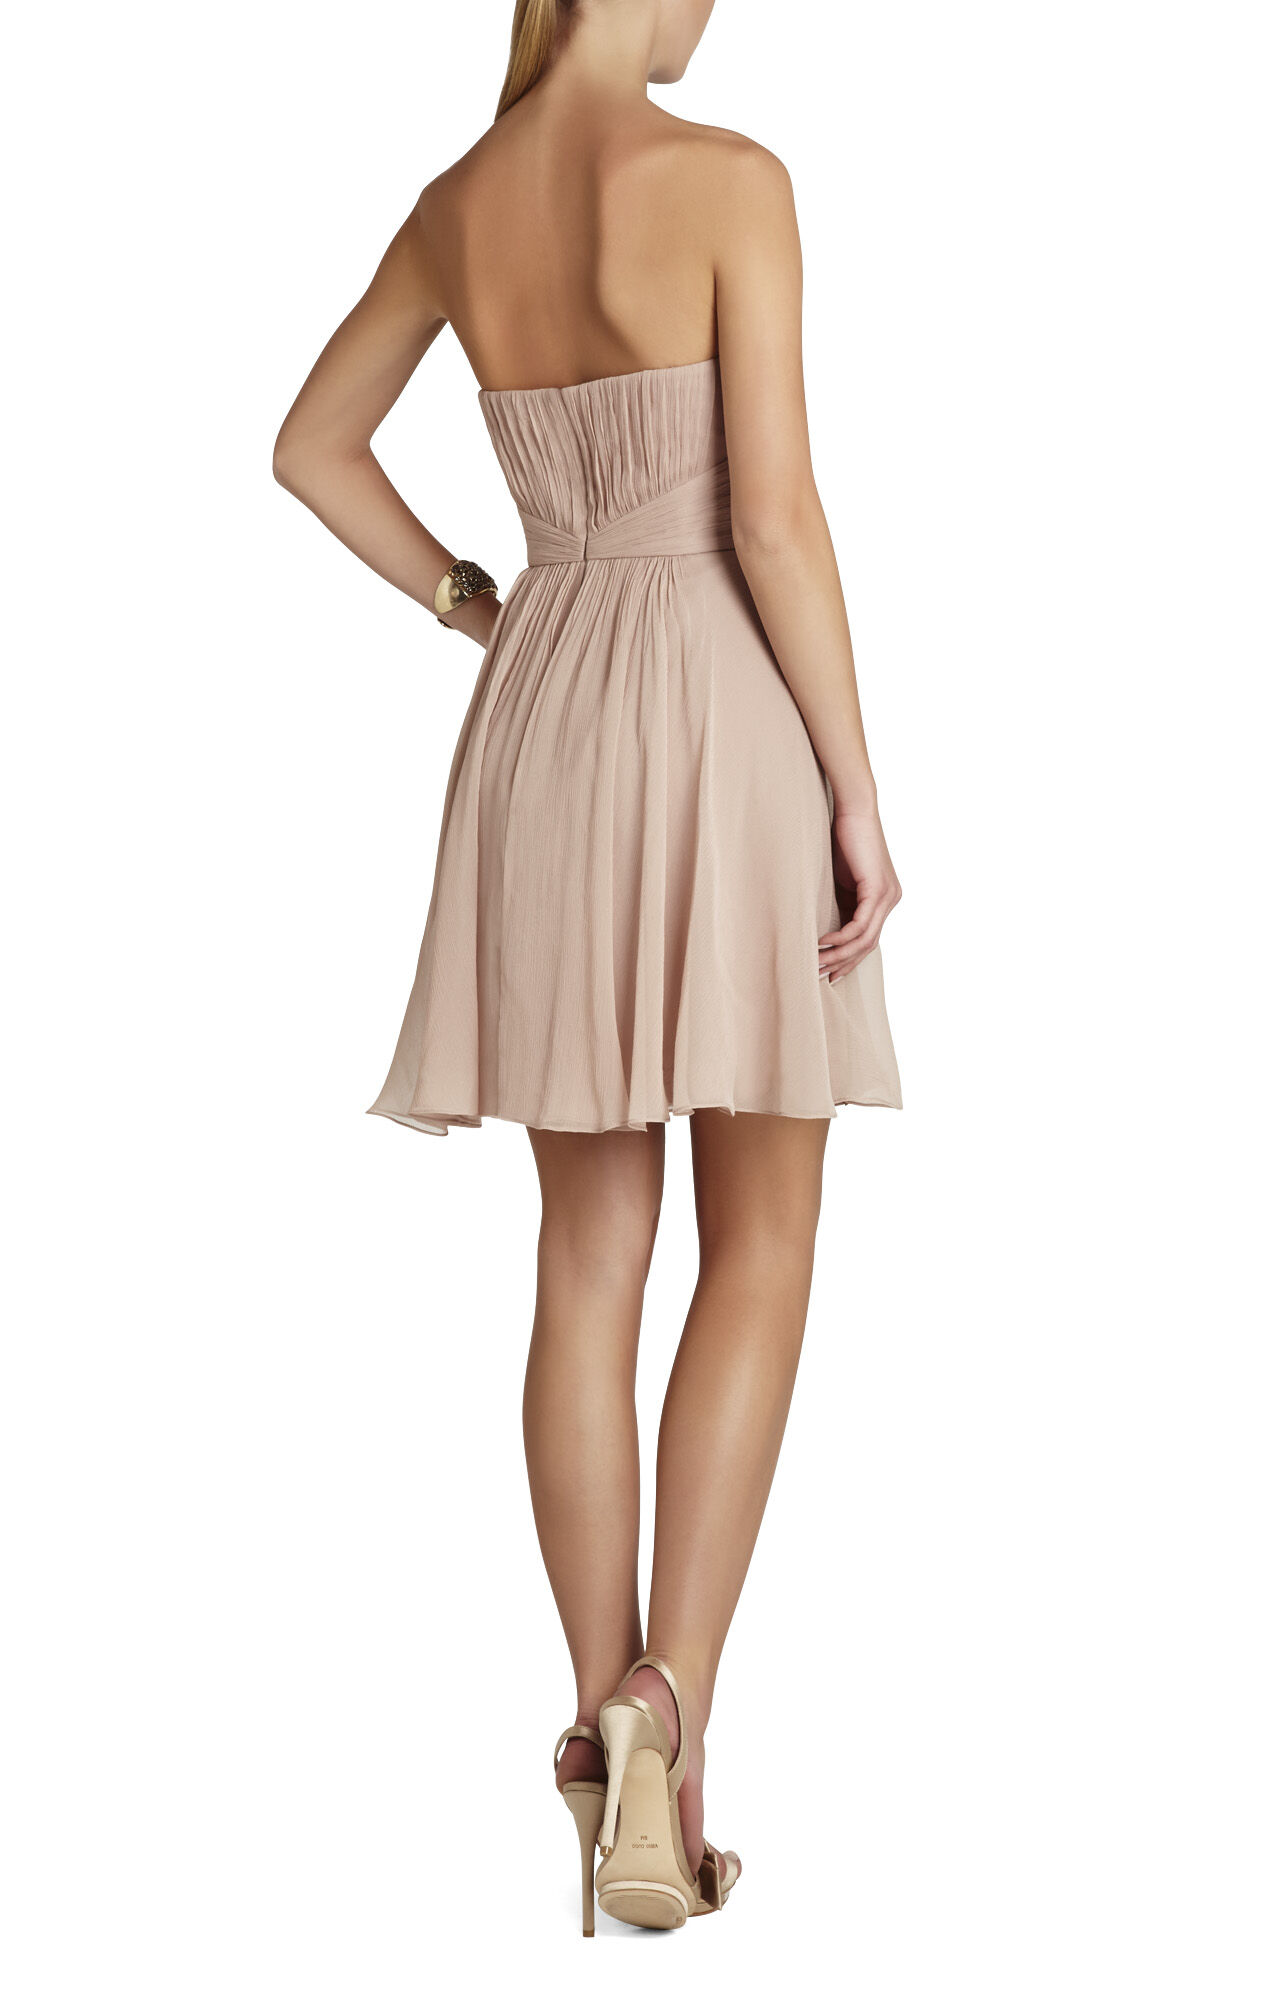 Duran Strapless Dress With Skirt Drape